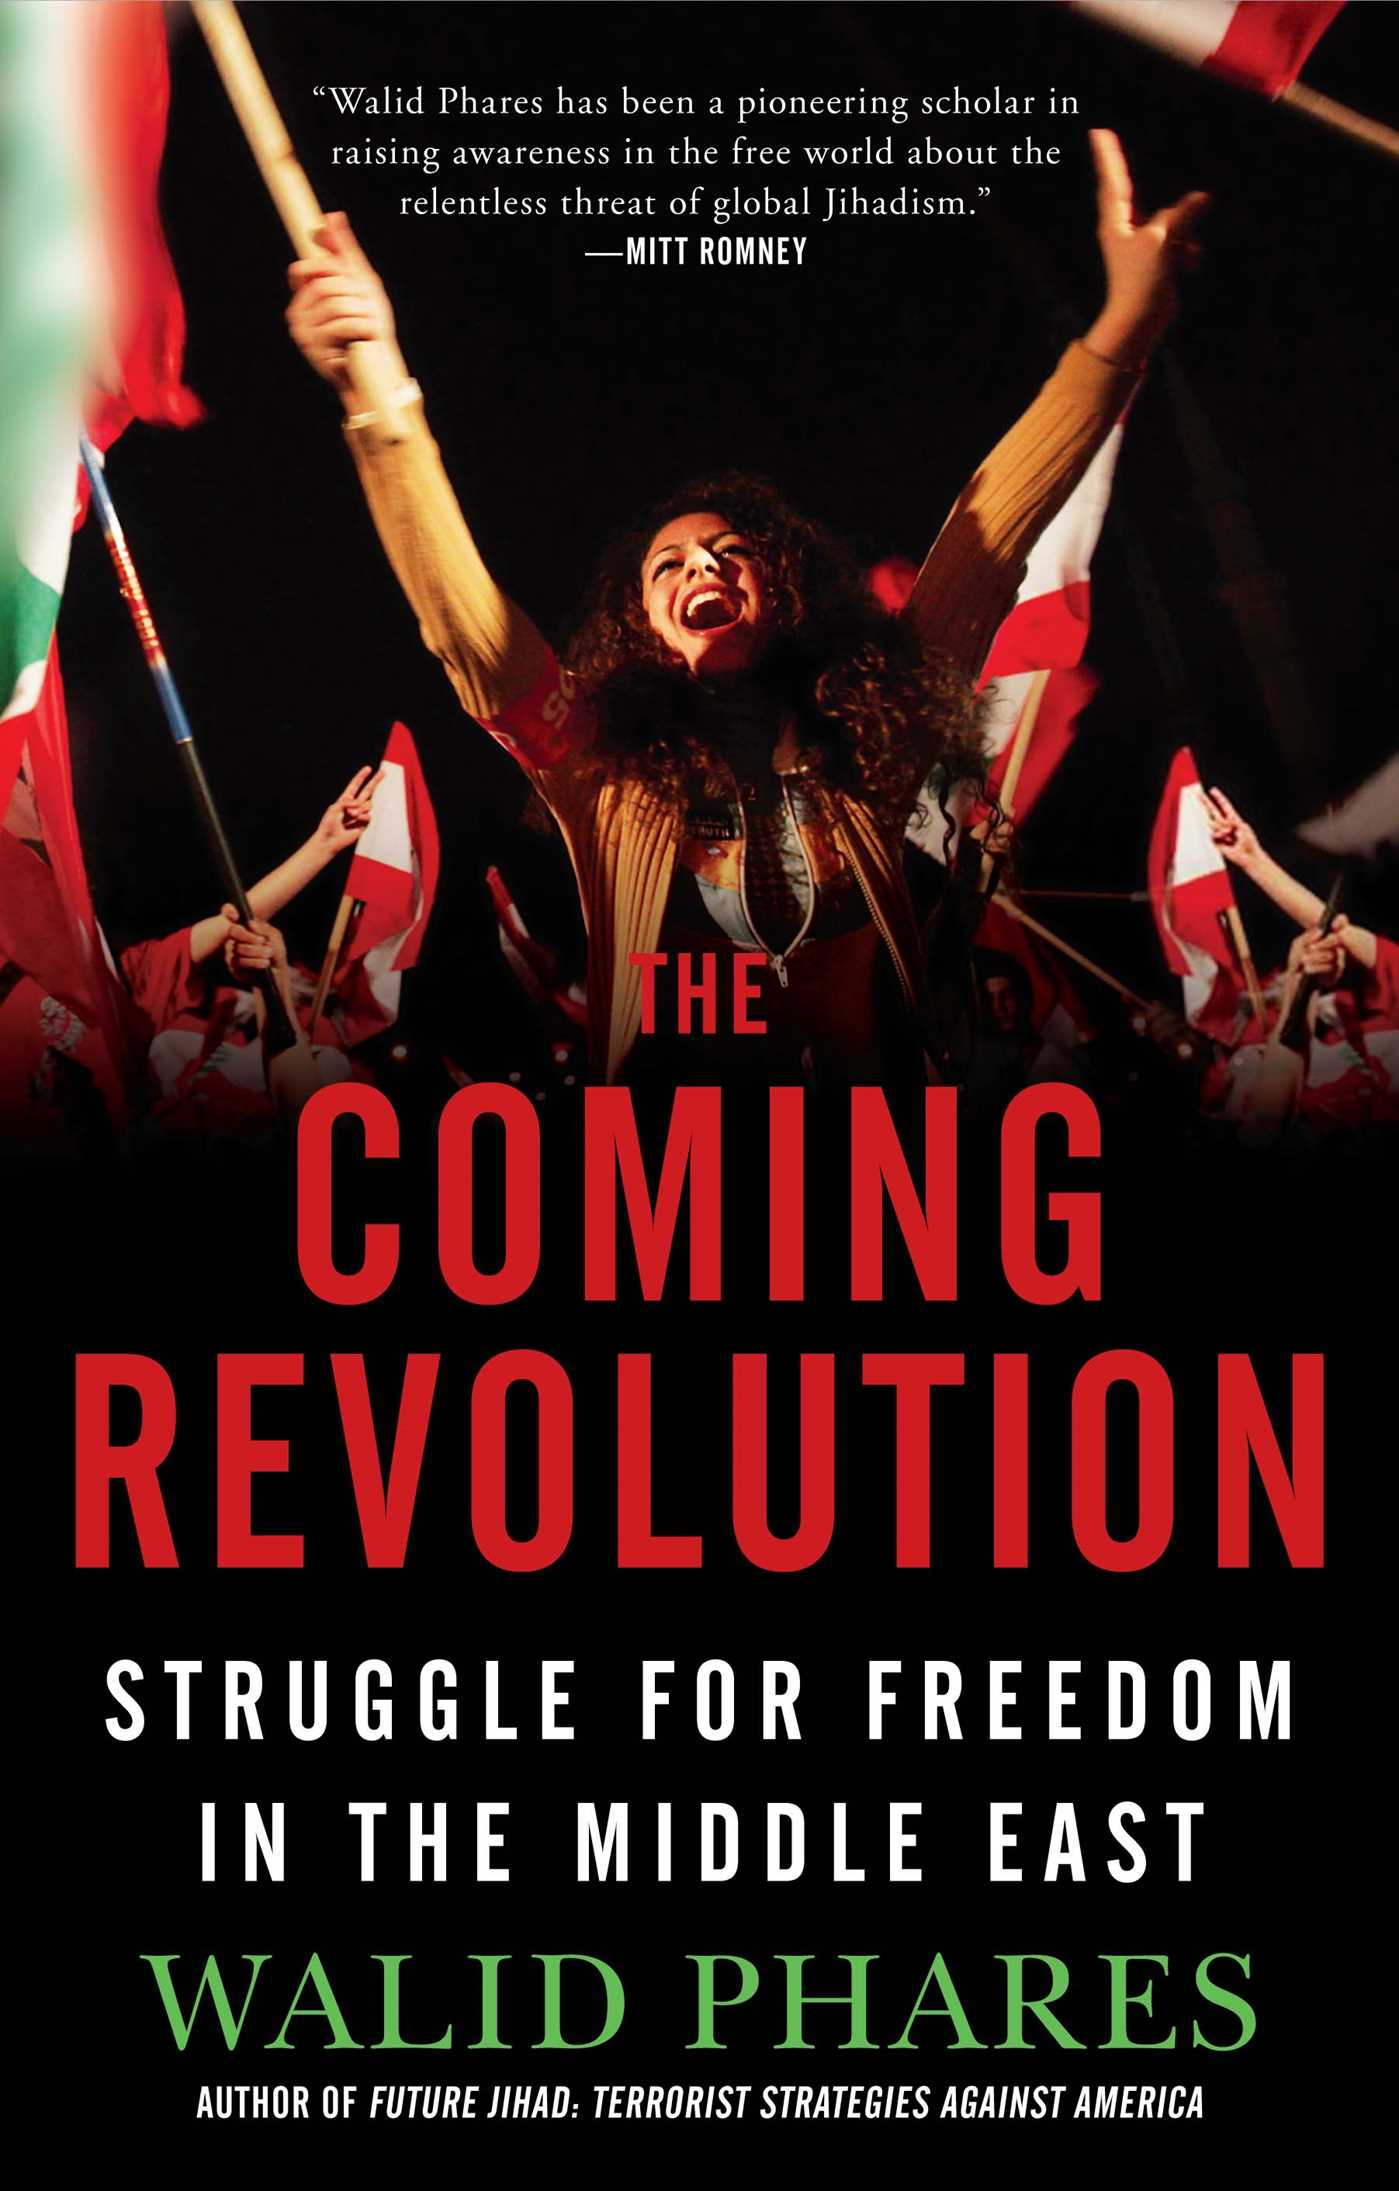 The-coming-revolution-9781439180495_hr